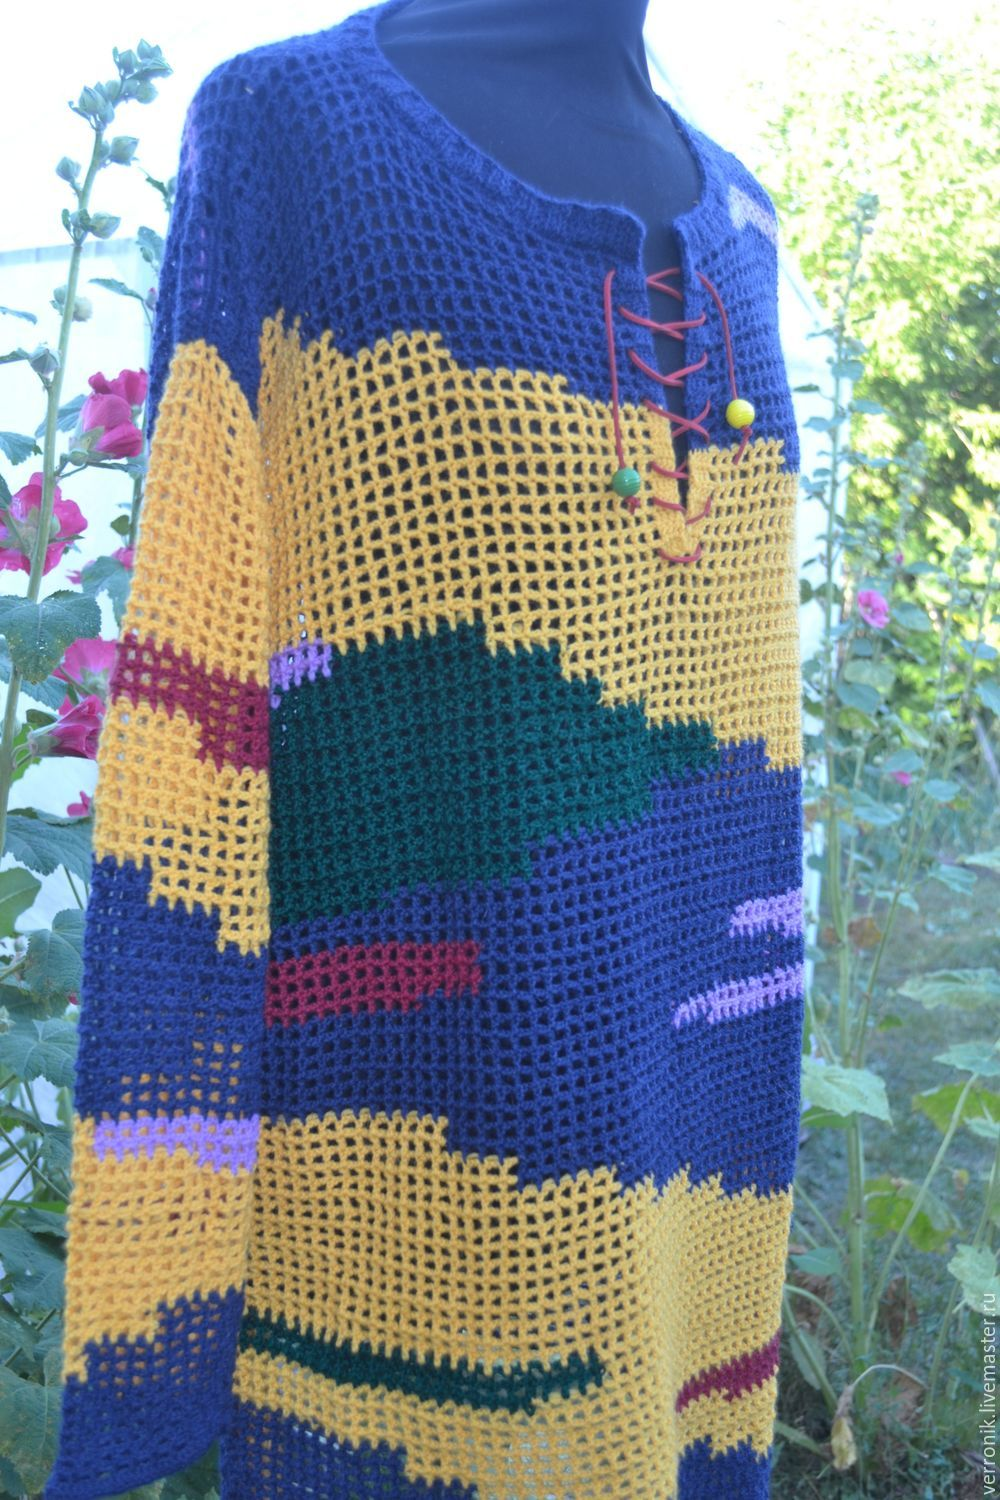 Tunic Knitted Stained Glass Windows Yellow Blue Red Green